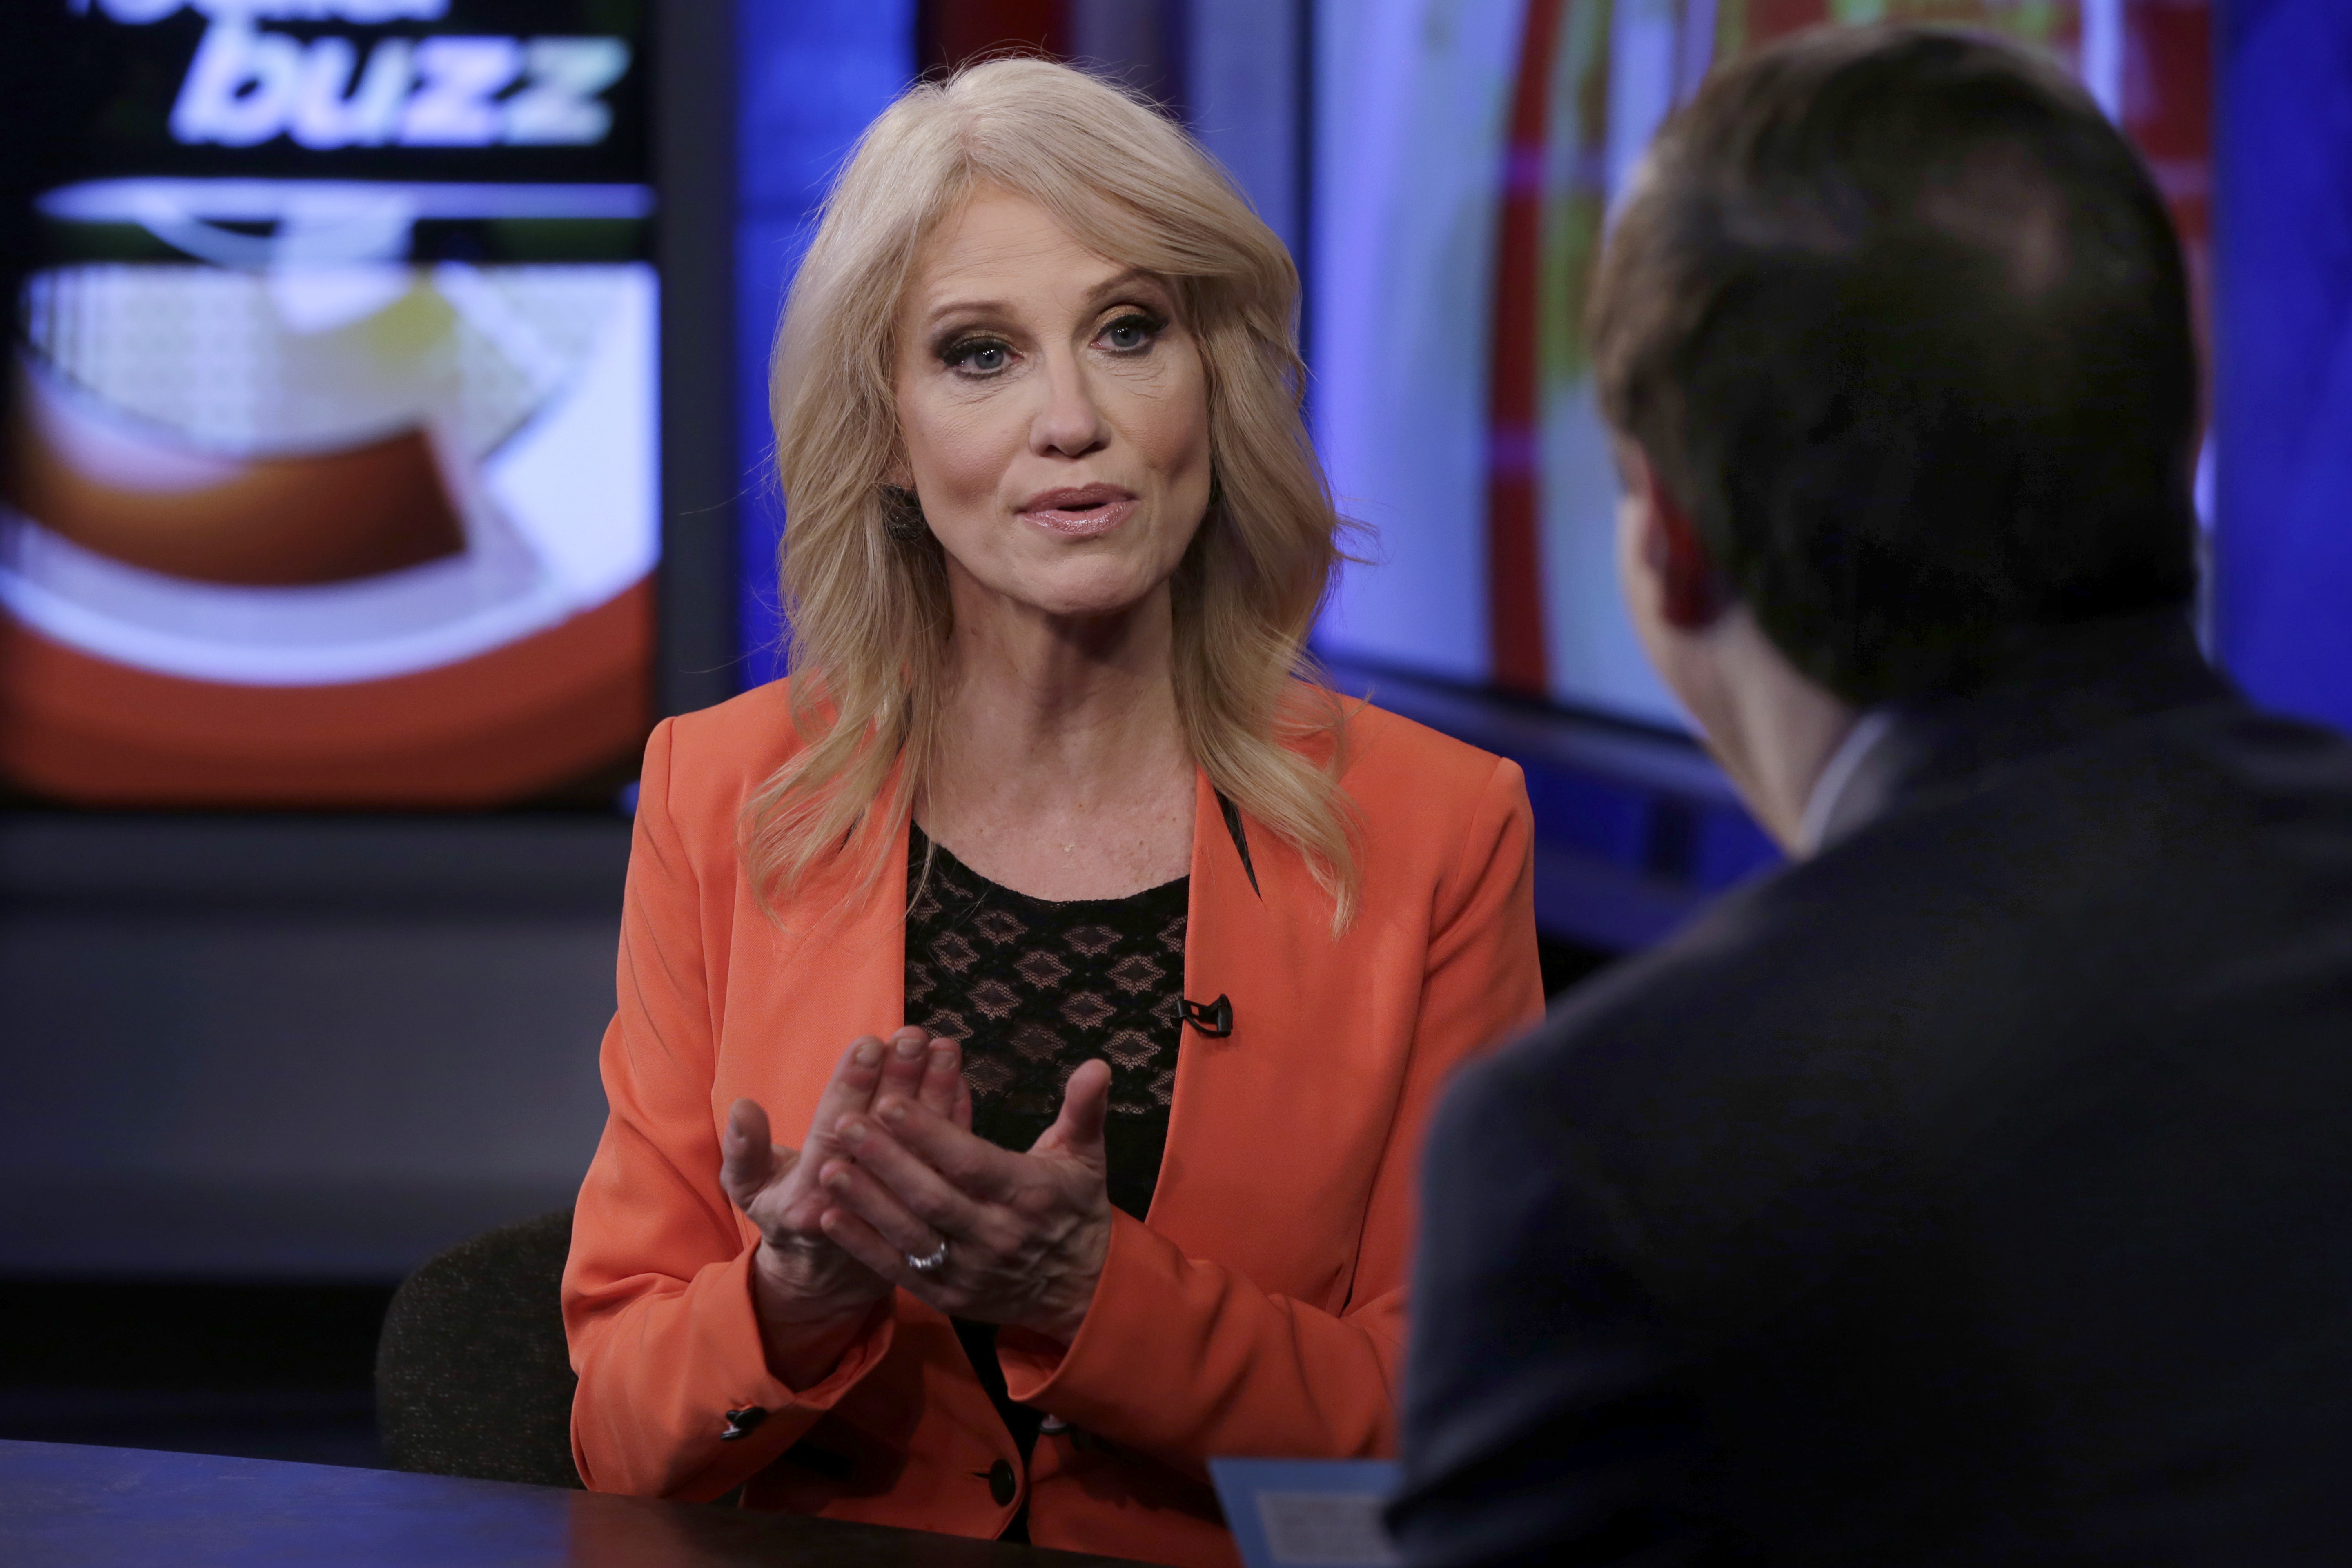 kellyanne conway bio news photos washington times counselor to the president kellyanne conway is interviewed by howard kurtz during a taping of his